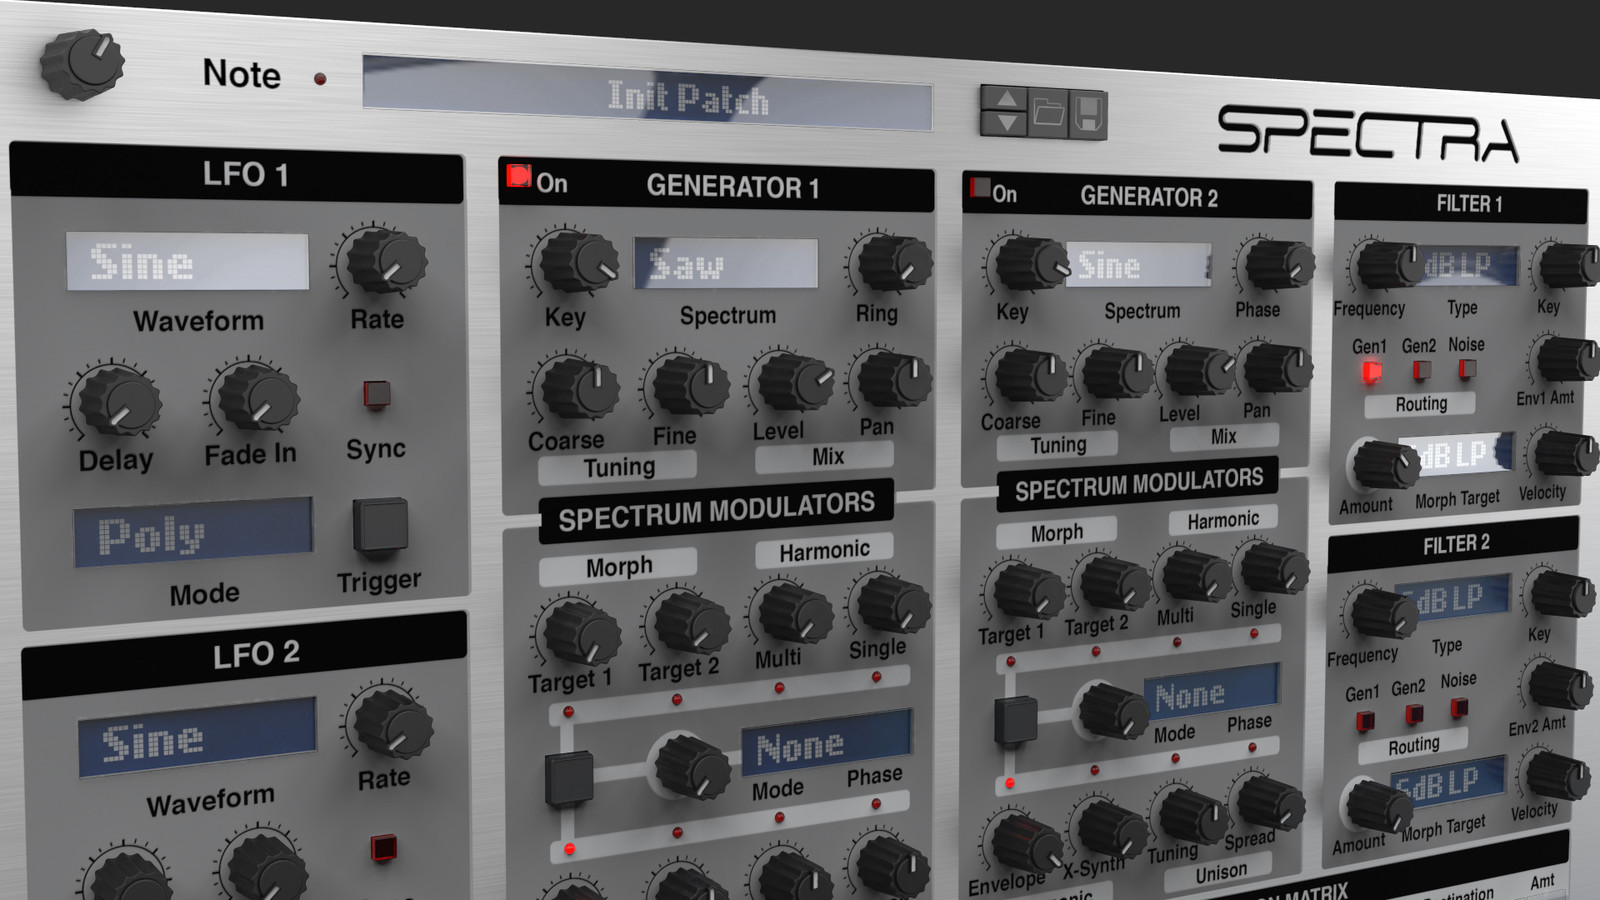 Spectra Software Synthesizer